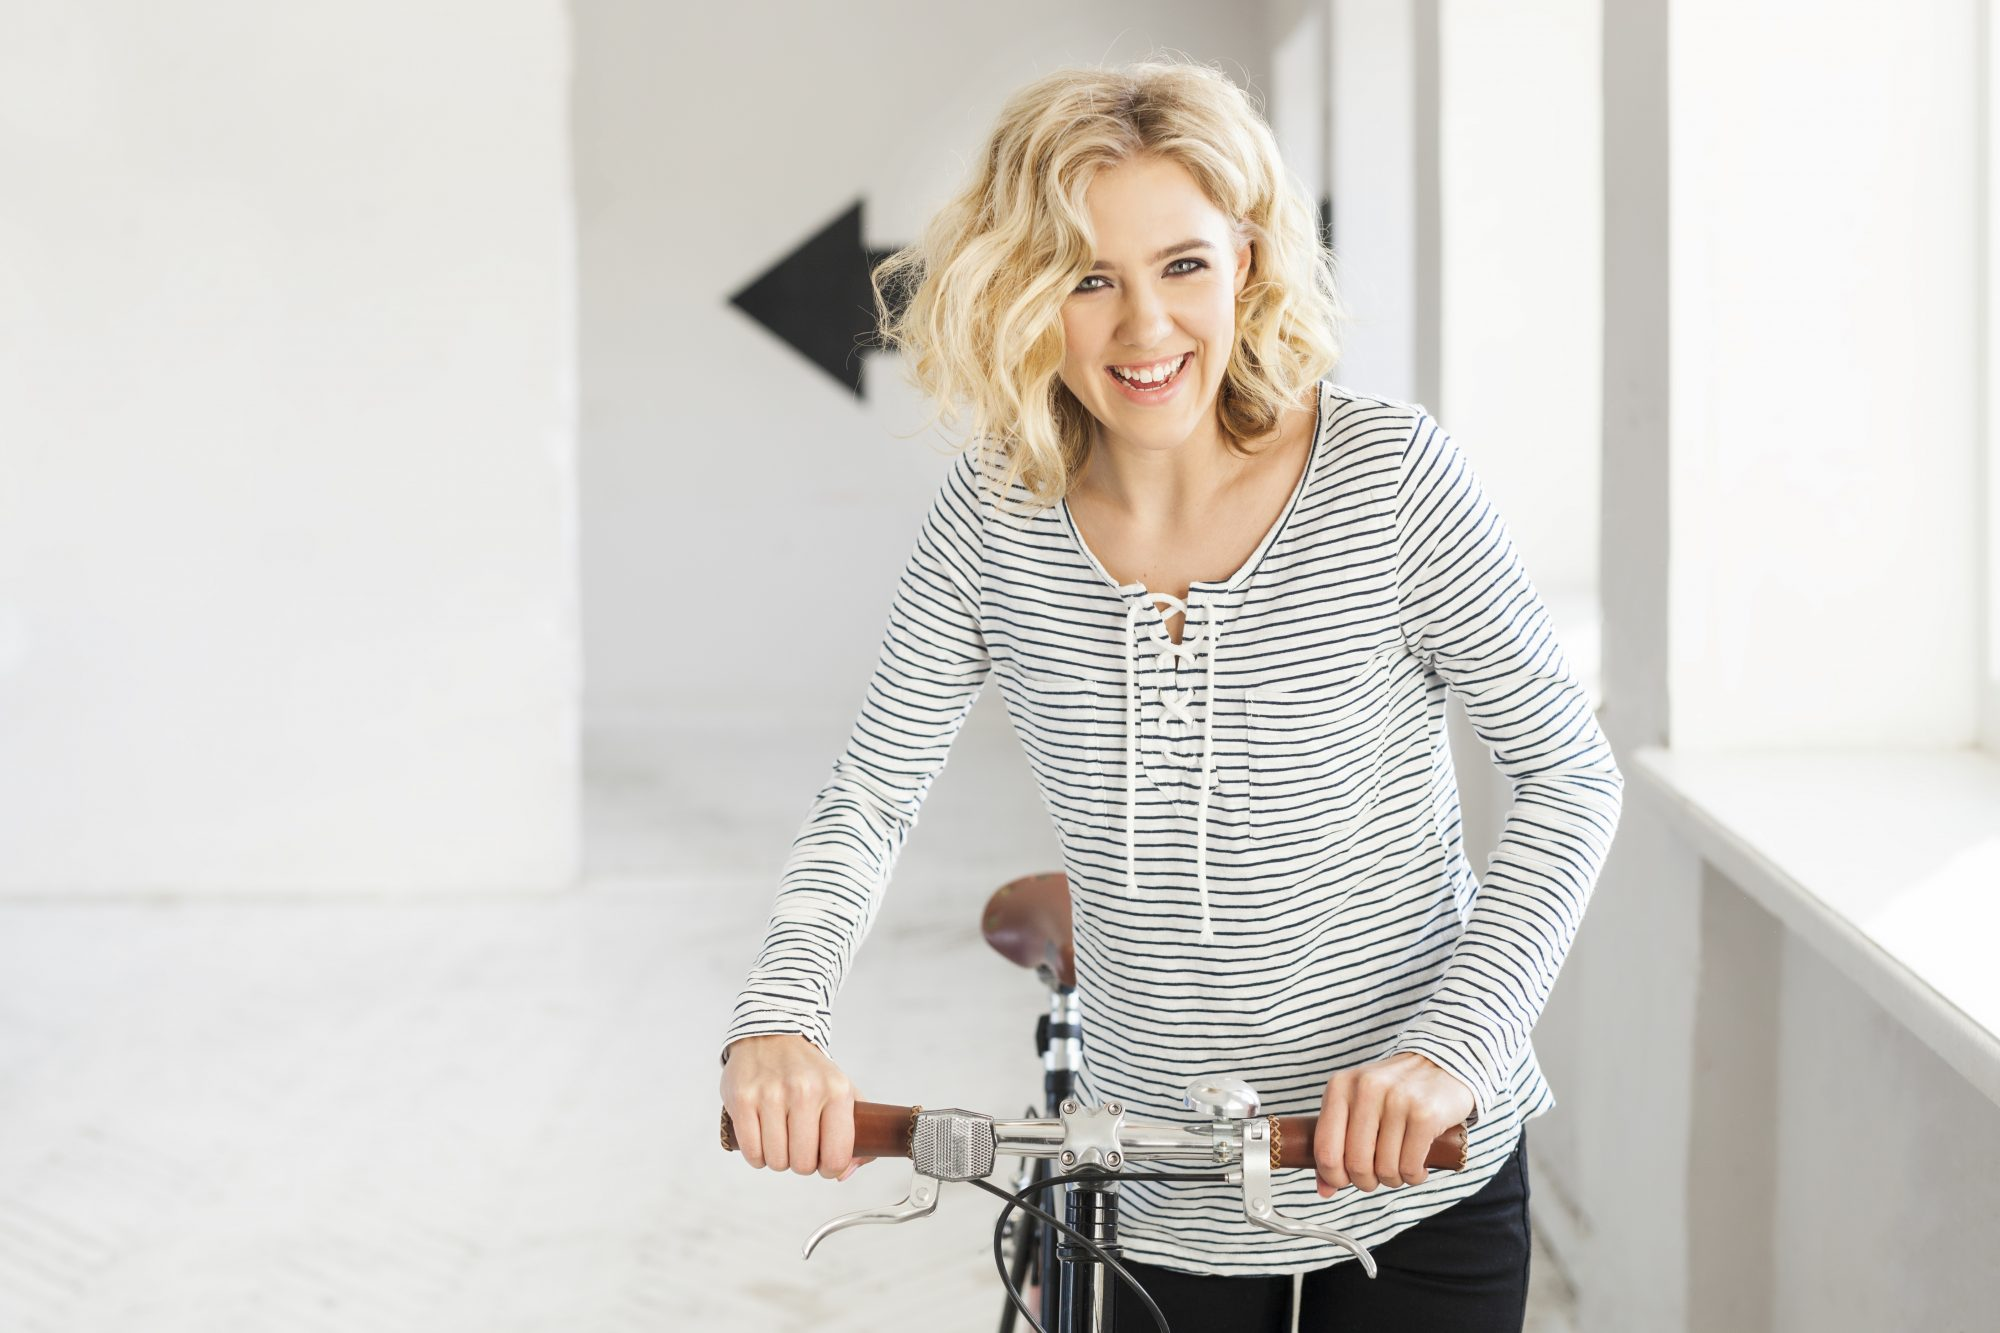 Woman with Blond Curly Hair on Bike Smiling